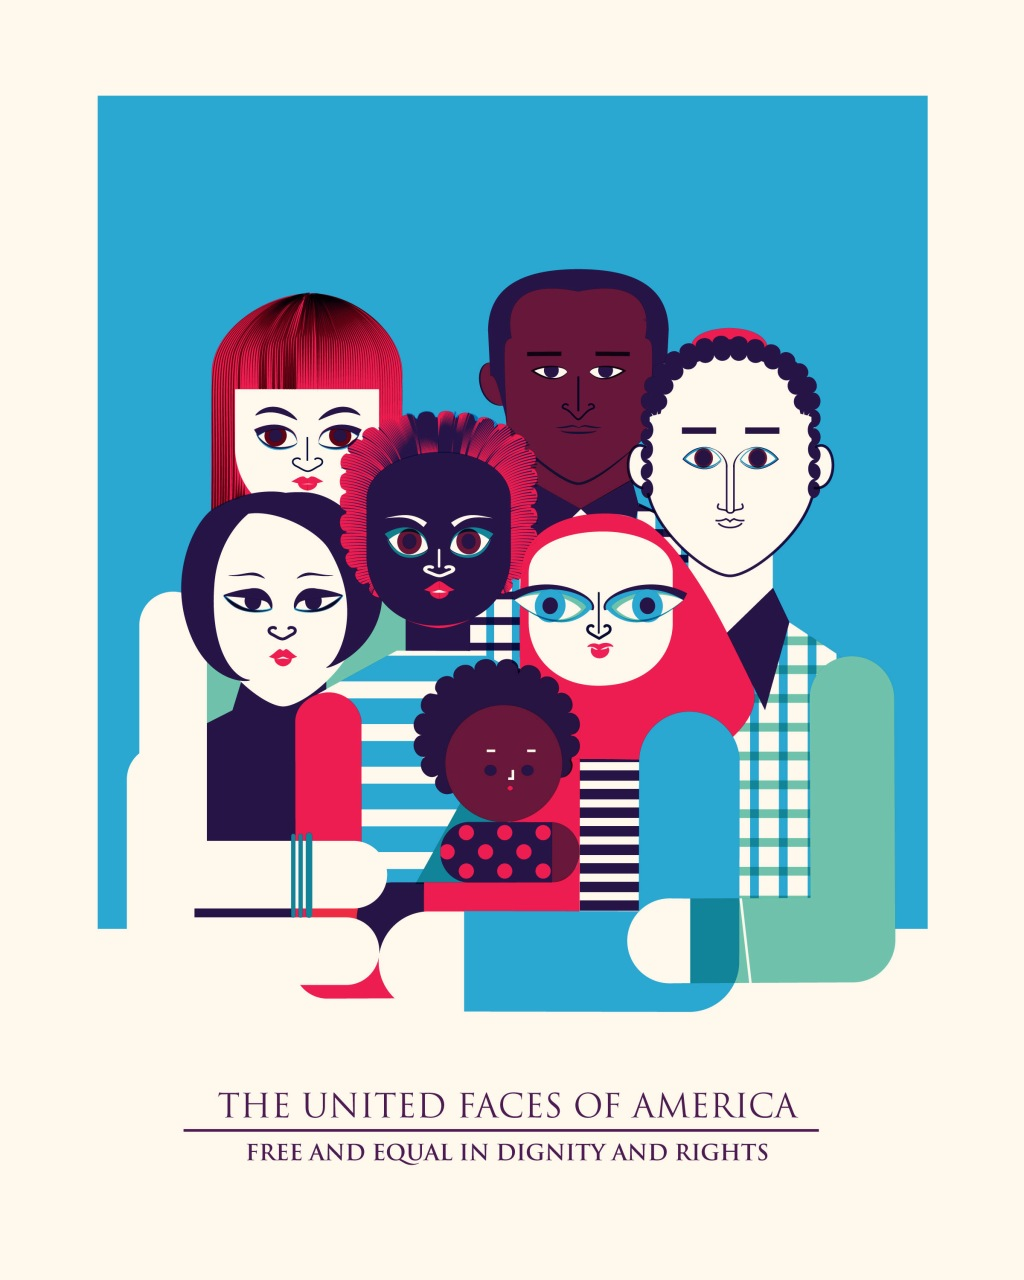 Aditi Raychoudhury. The United Faces of America. 2017. Screen print.